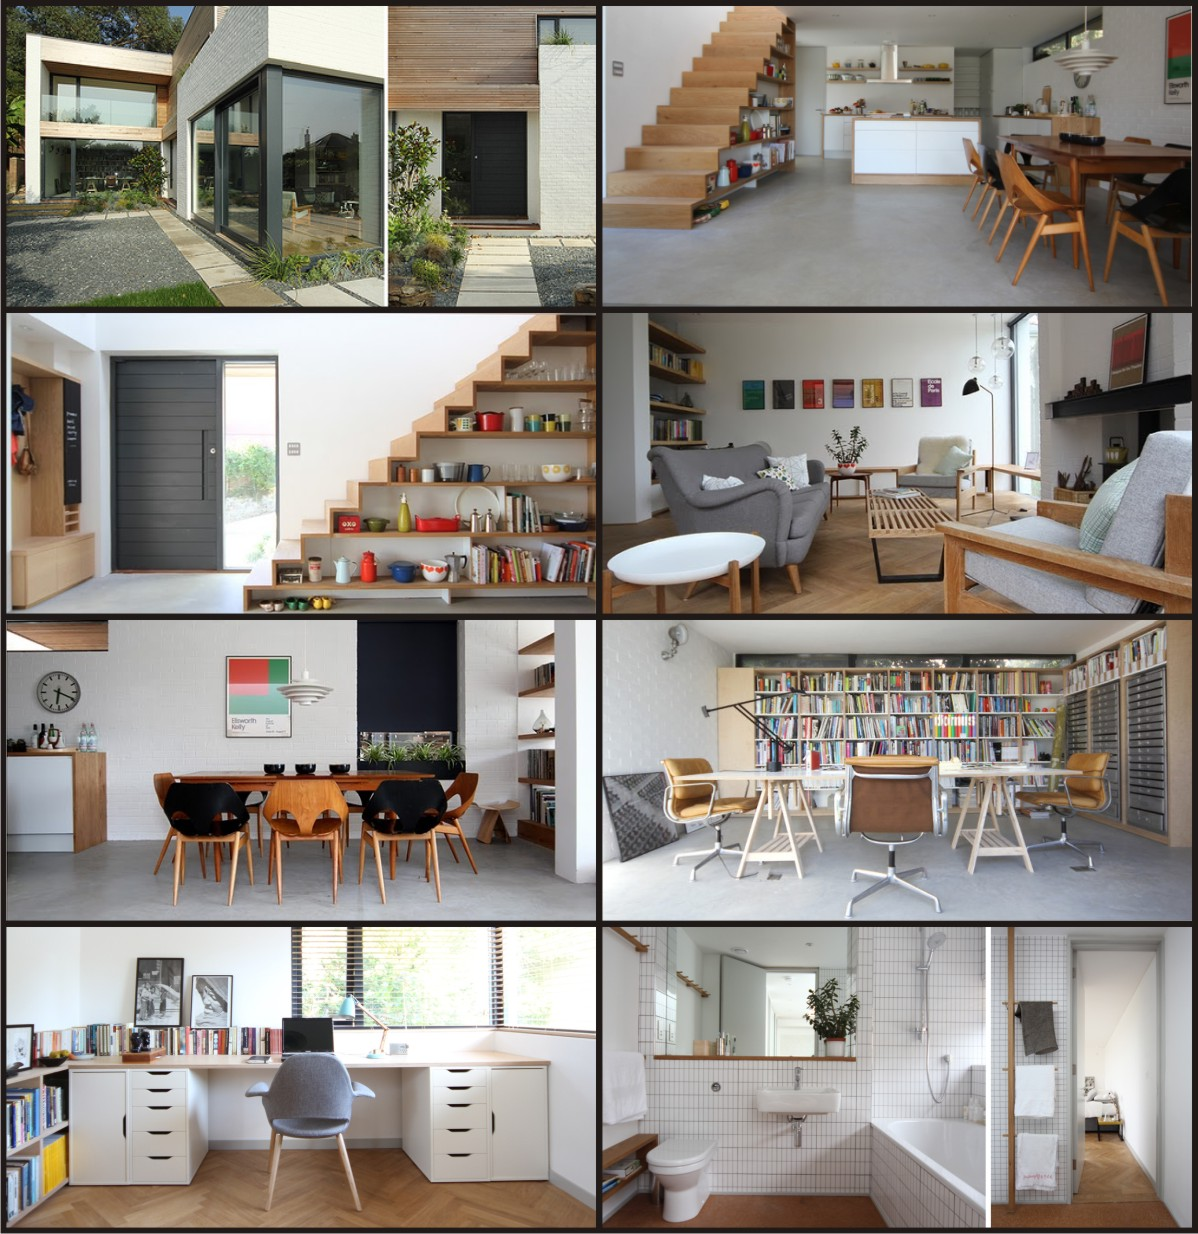 Grand Designs Presenter House: State Of Joy: August 2011